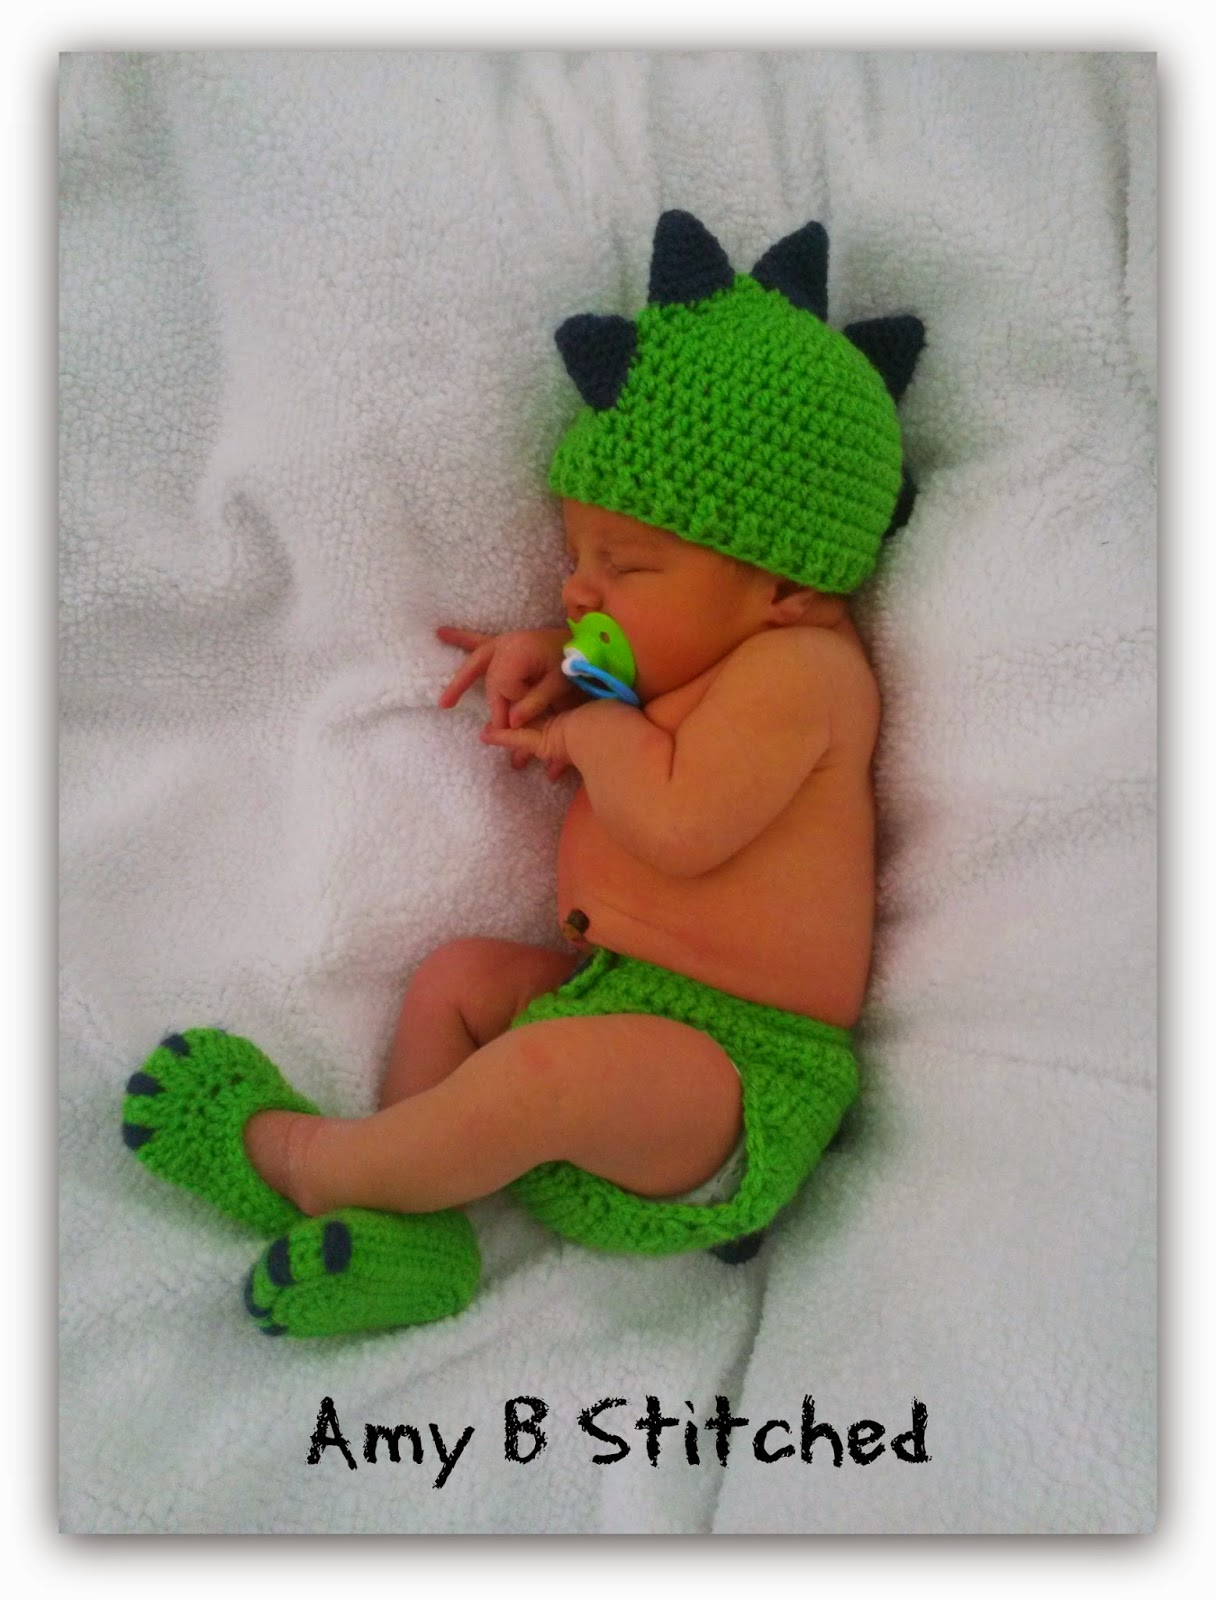 Crochet Pattern For Baby Dinosaur Hat : A Stitch At A Time for Amy B Stitched: DINOSAUR BABY Hat ...